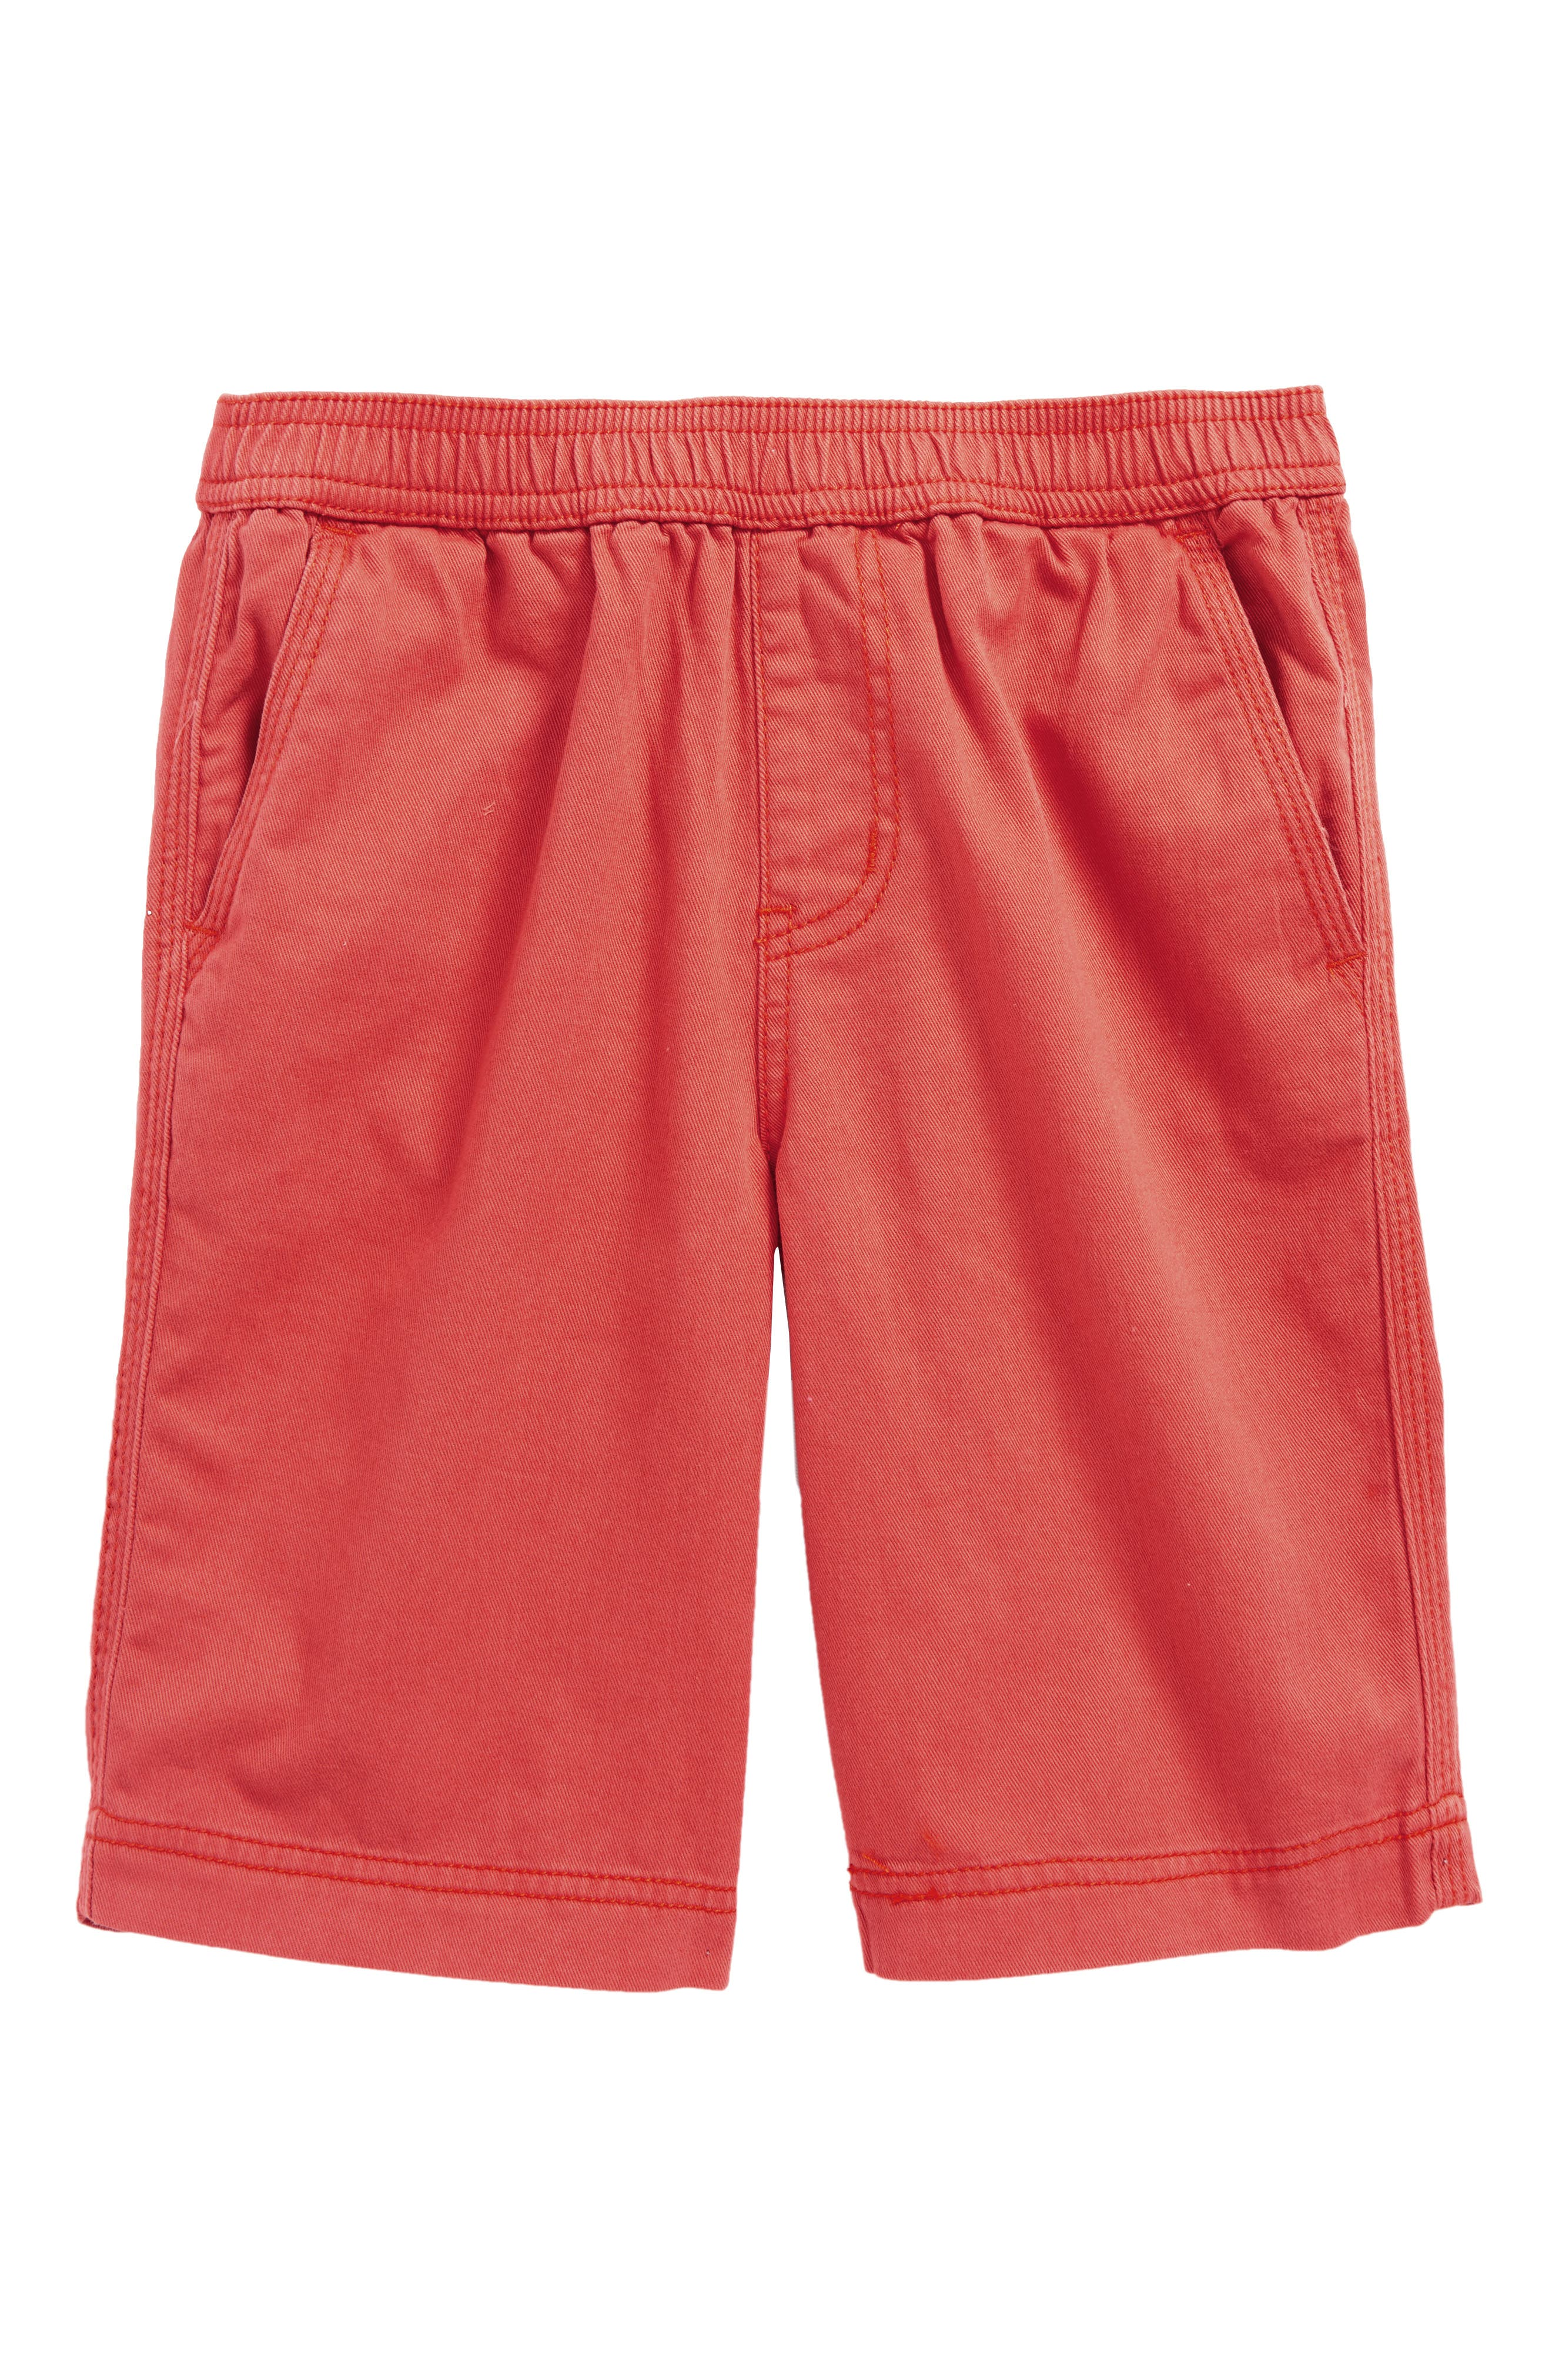 Easy Does It Twill Shorts,                             Main thumbnail 1, color,                             618